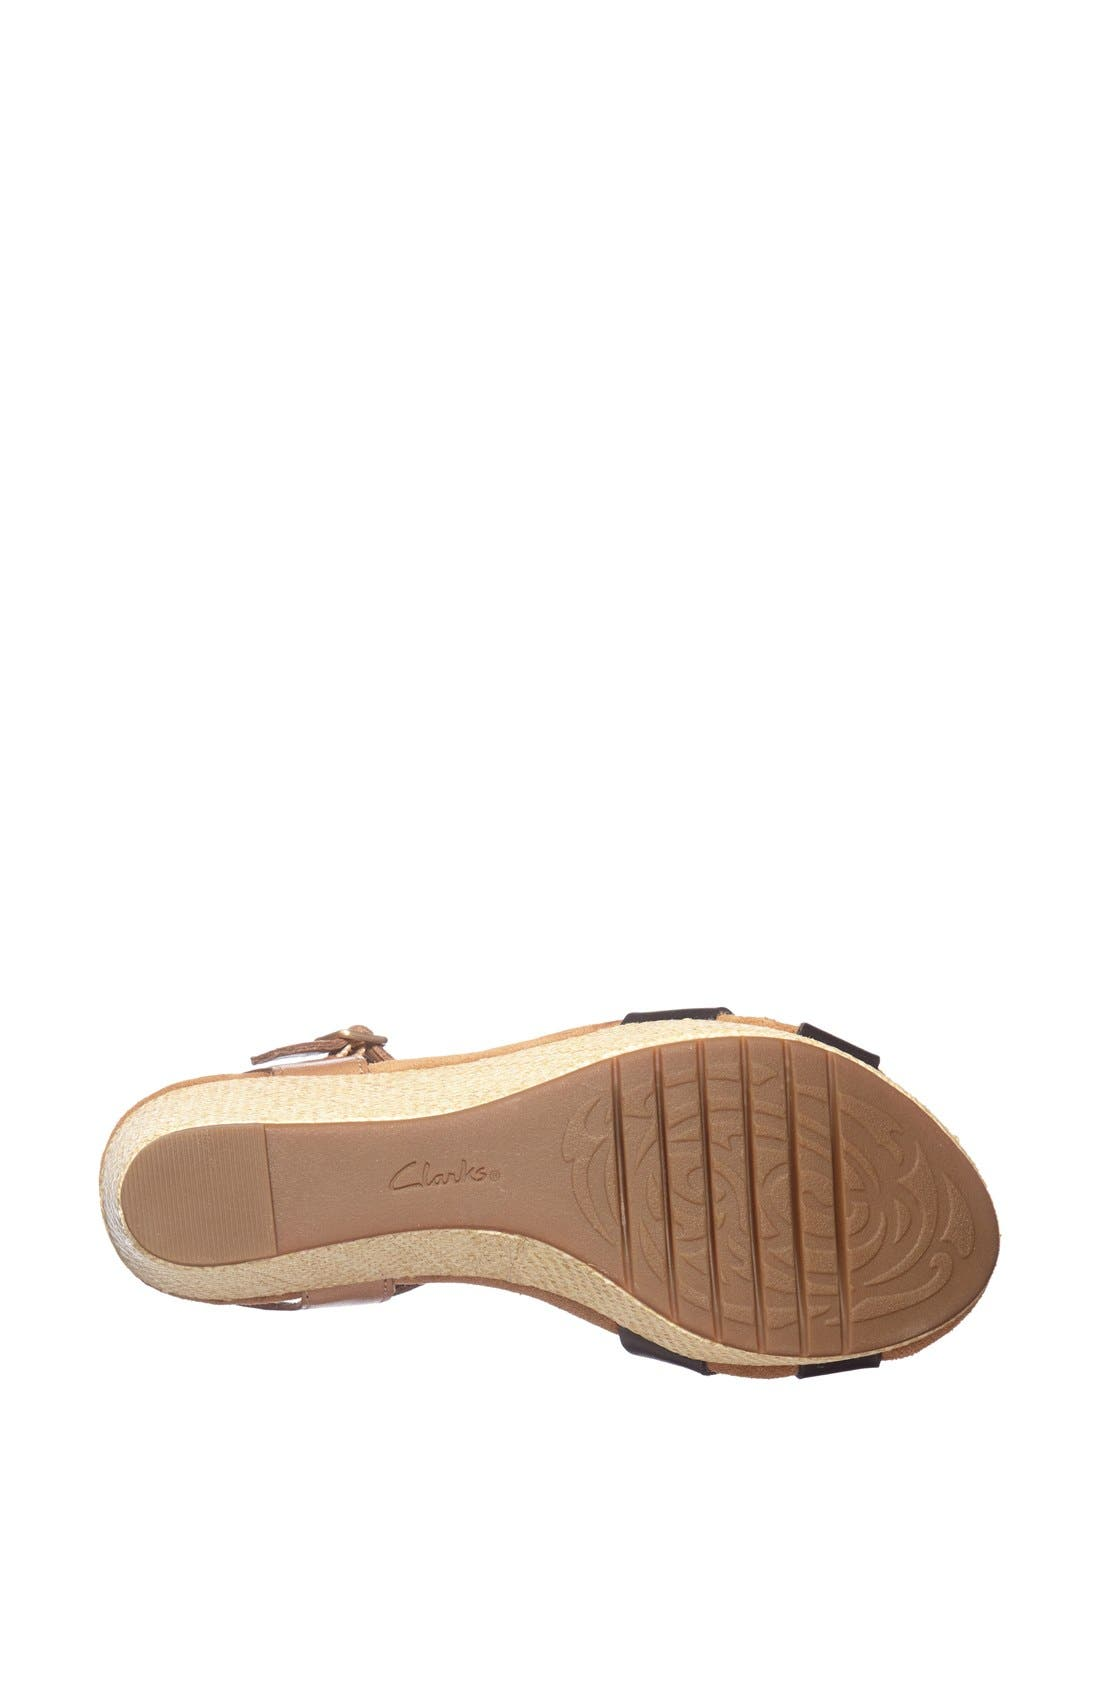 CLARKS<SUP>®</SUP>,                             'Caslynn Regina' Sandal,                             Alternate thumbnail 4, color,                             005